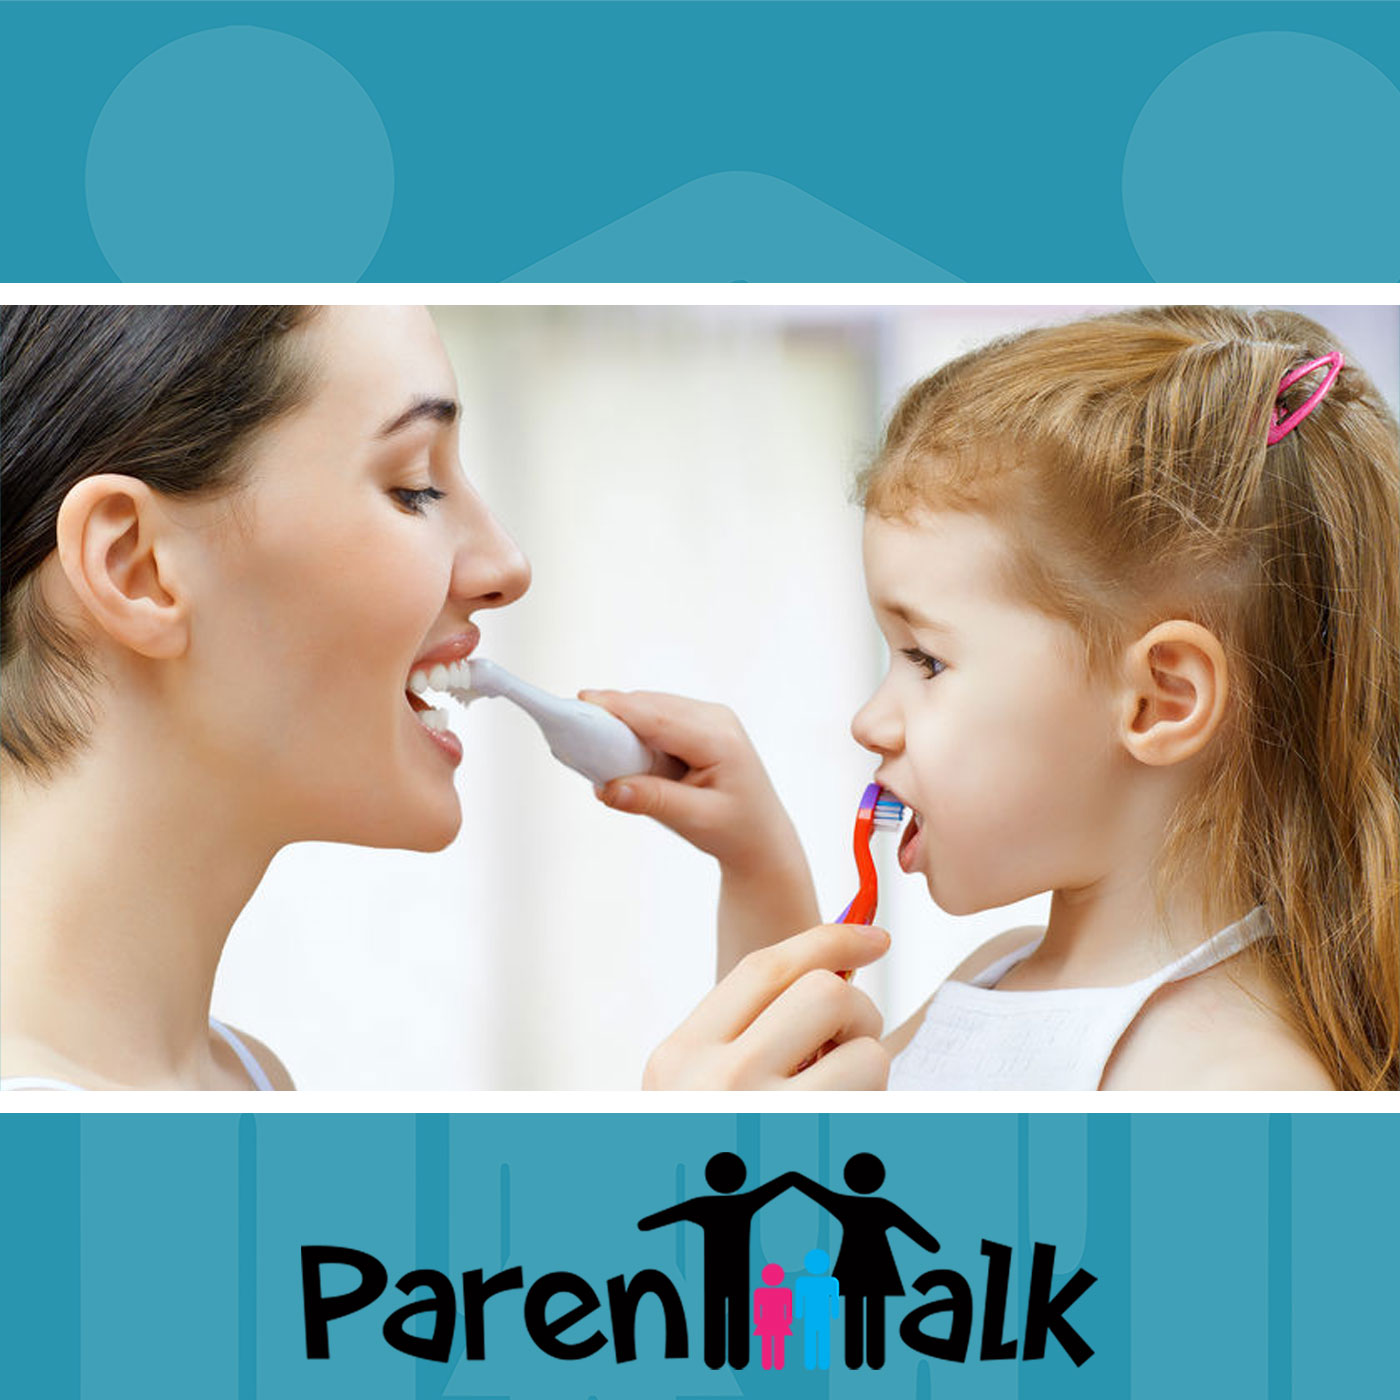 E76 - How to Take Care of our Children's Teeth - Parent Talk